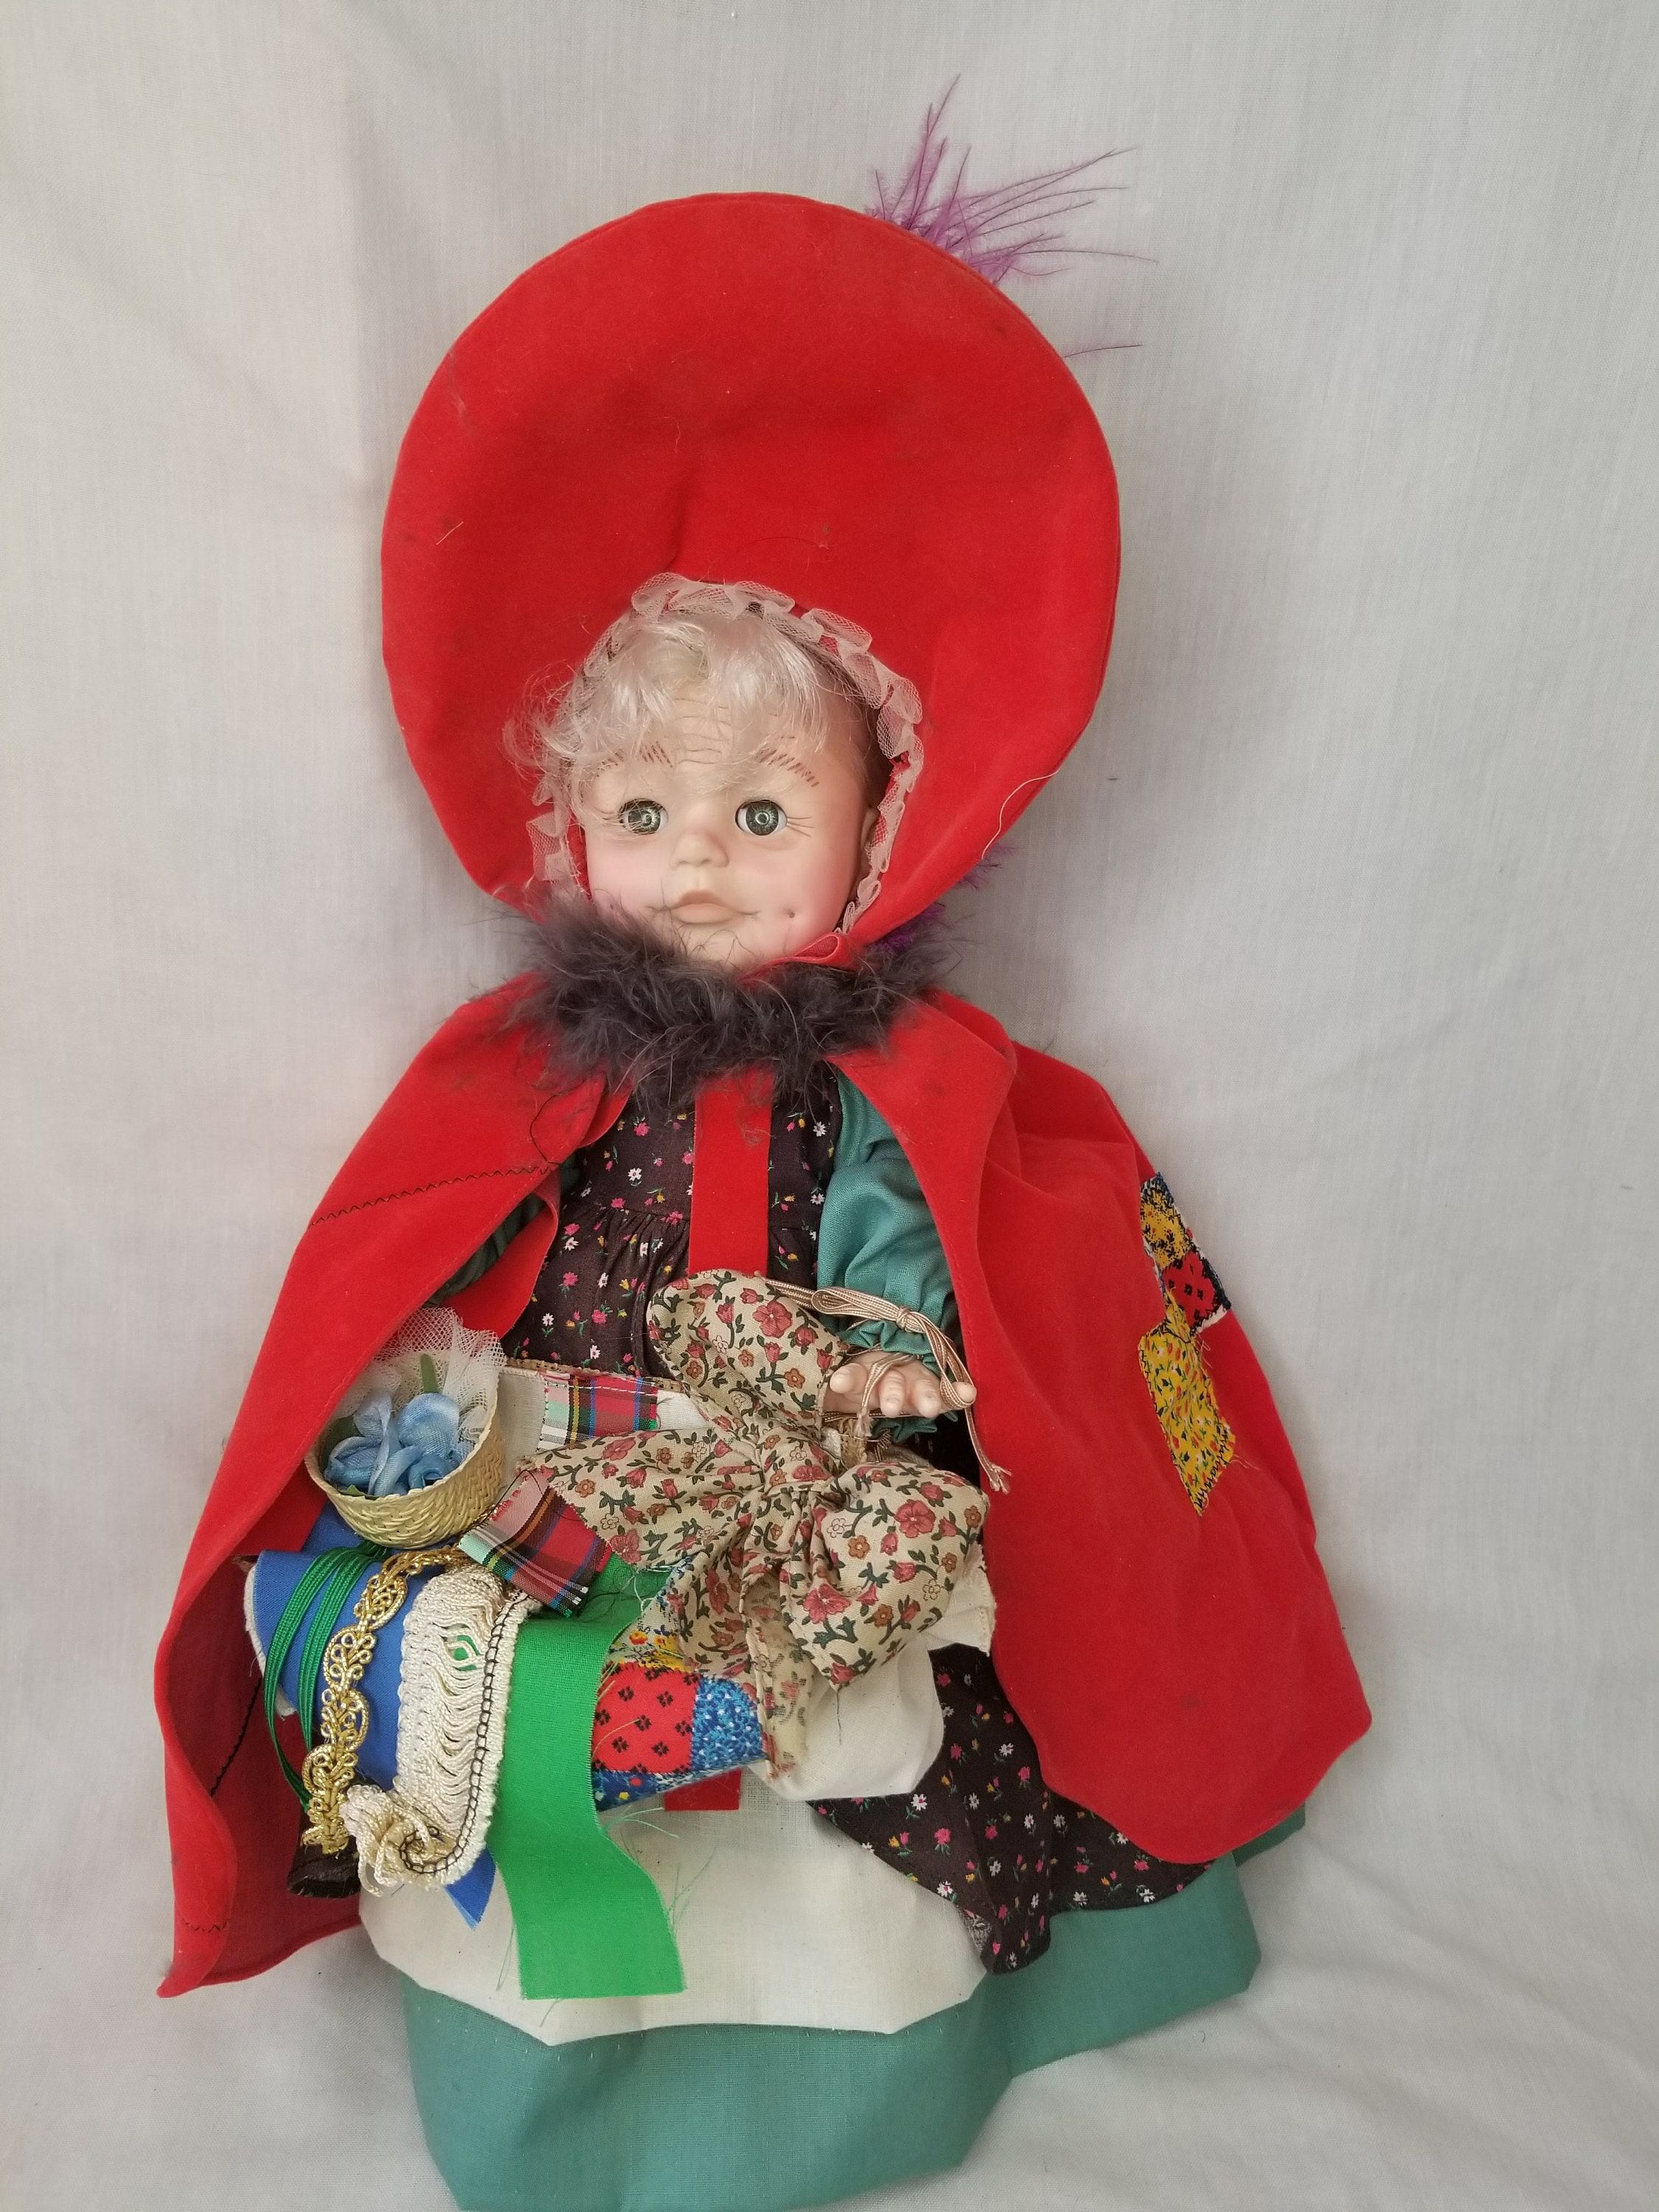 Reserved MARY 5/26 Victoria Haunted Doll ~ Effanbee Vinyl 18